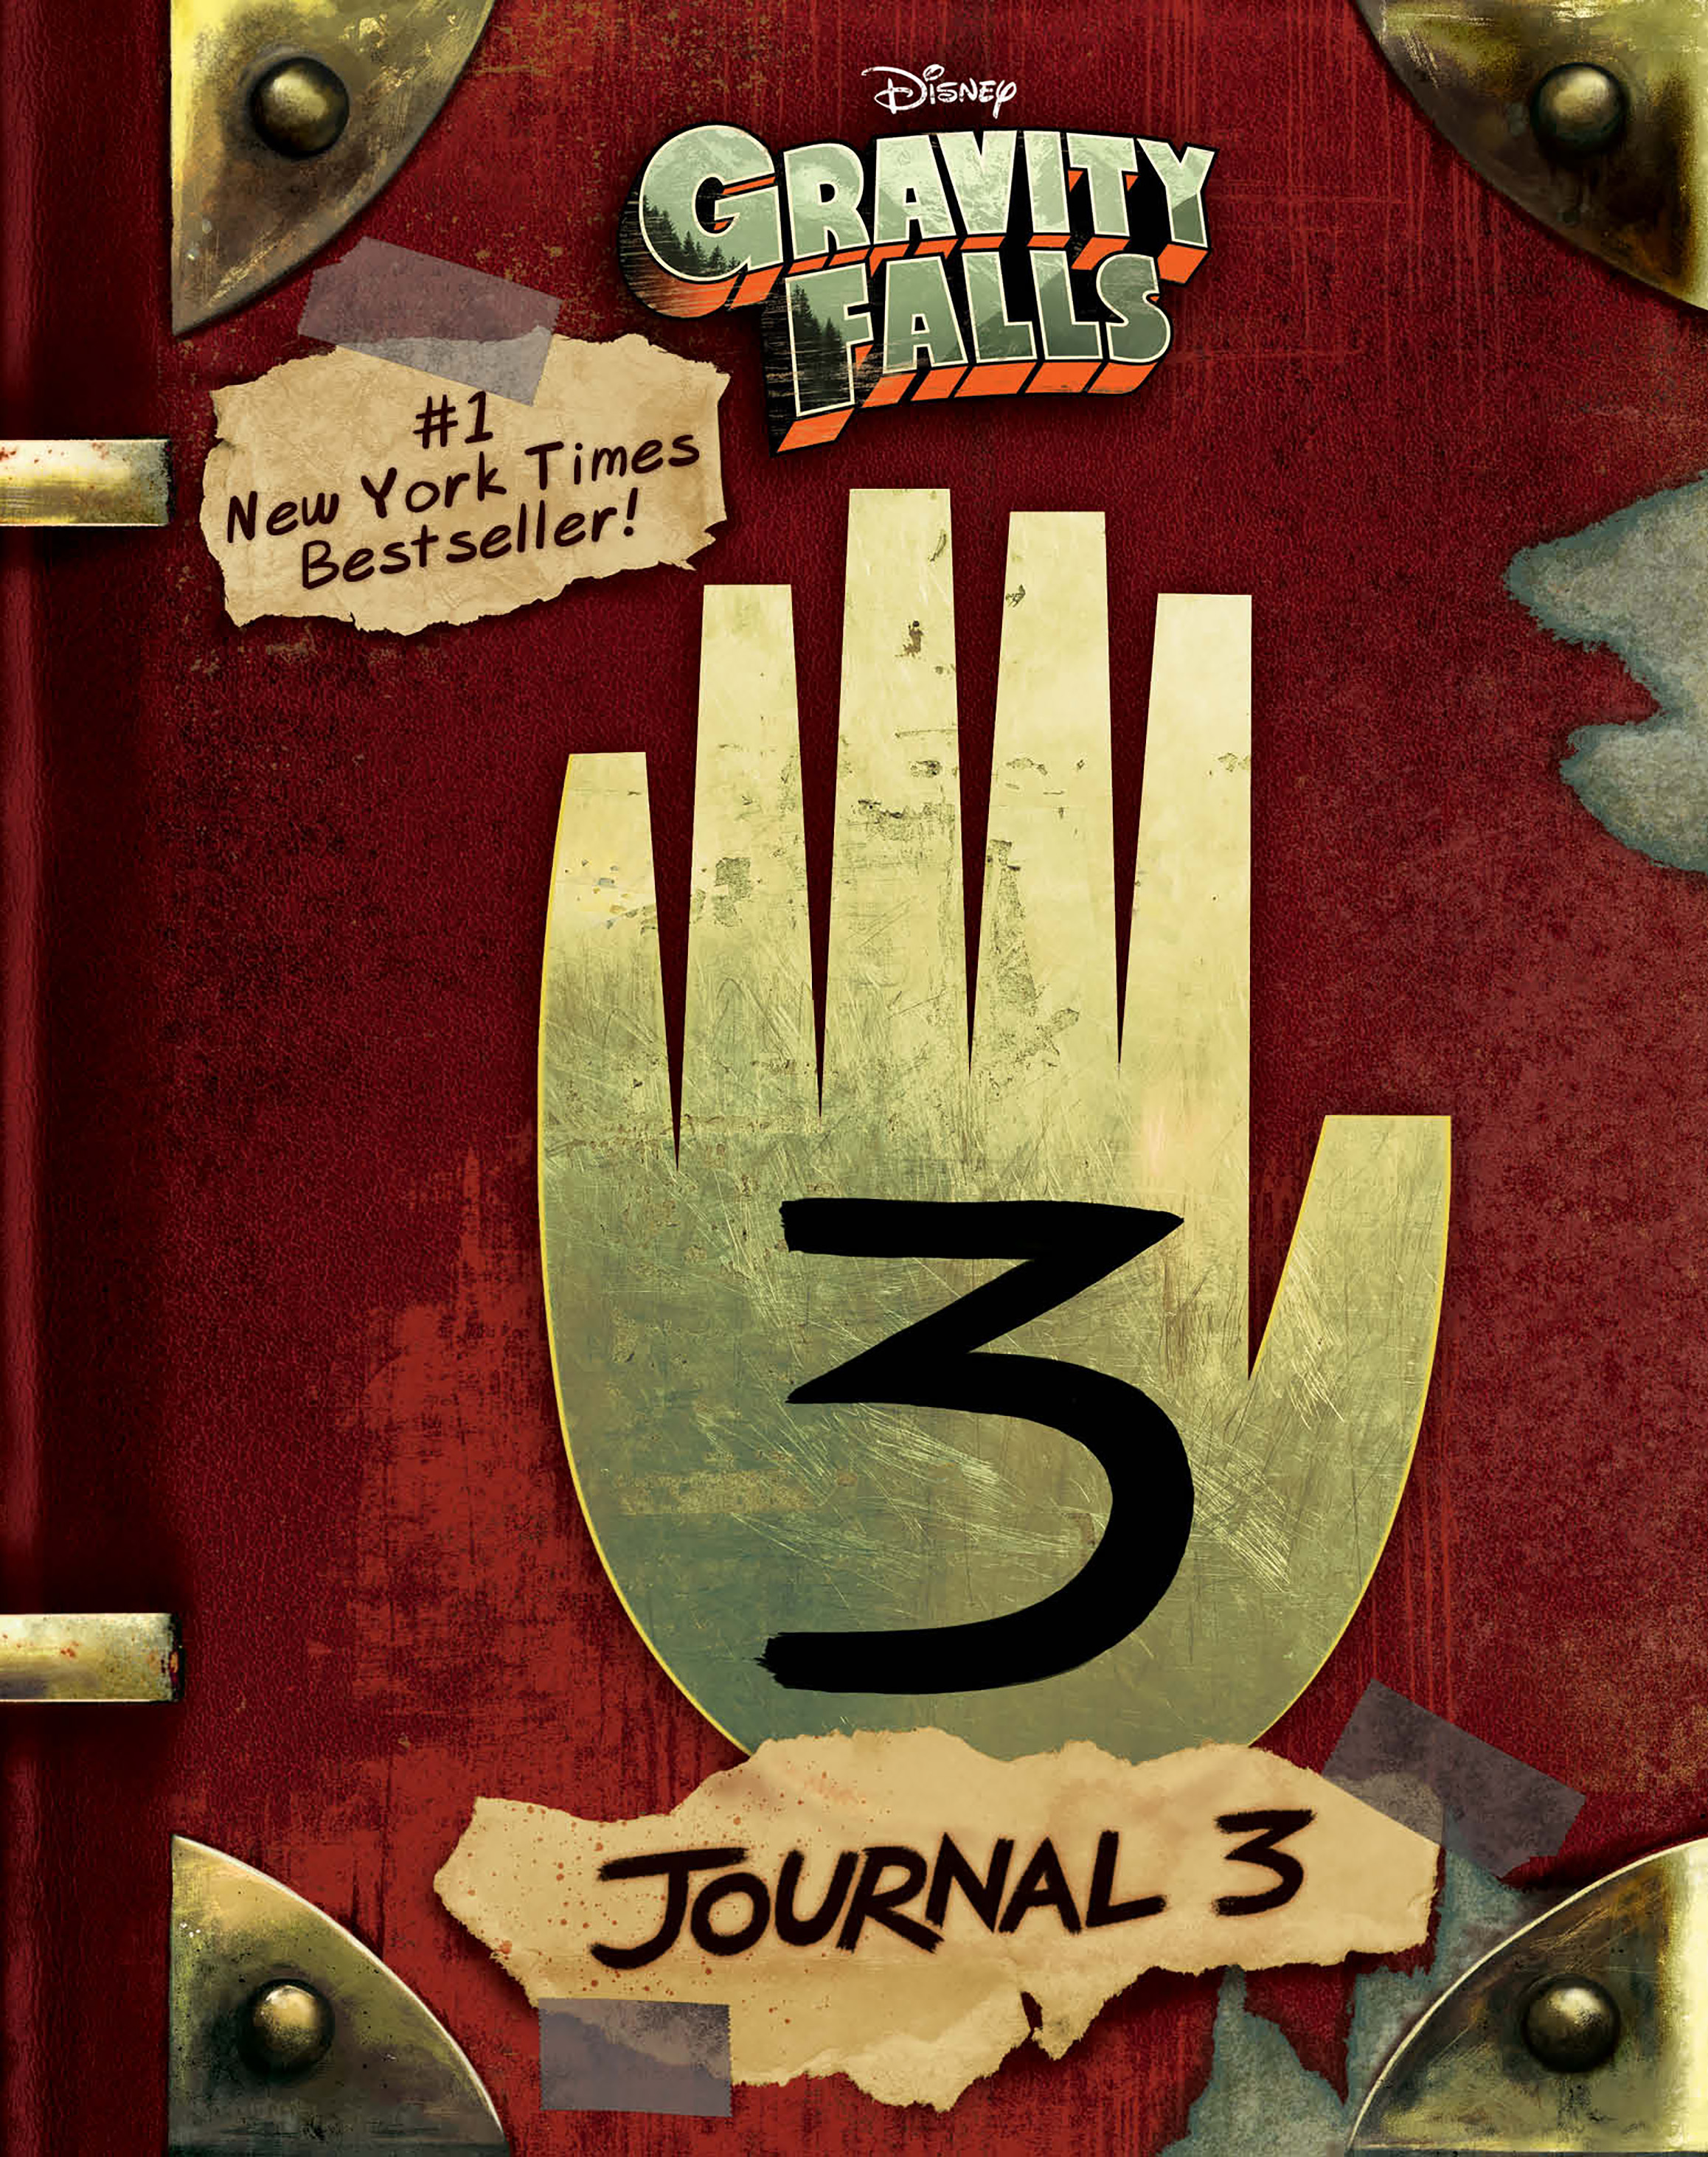 Gravity Falls Journal 3 Disney Books Disney Publishing Worldwide